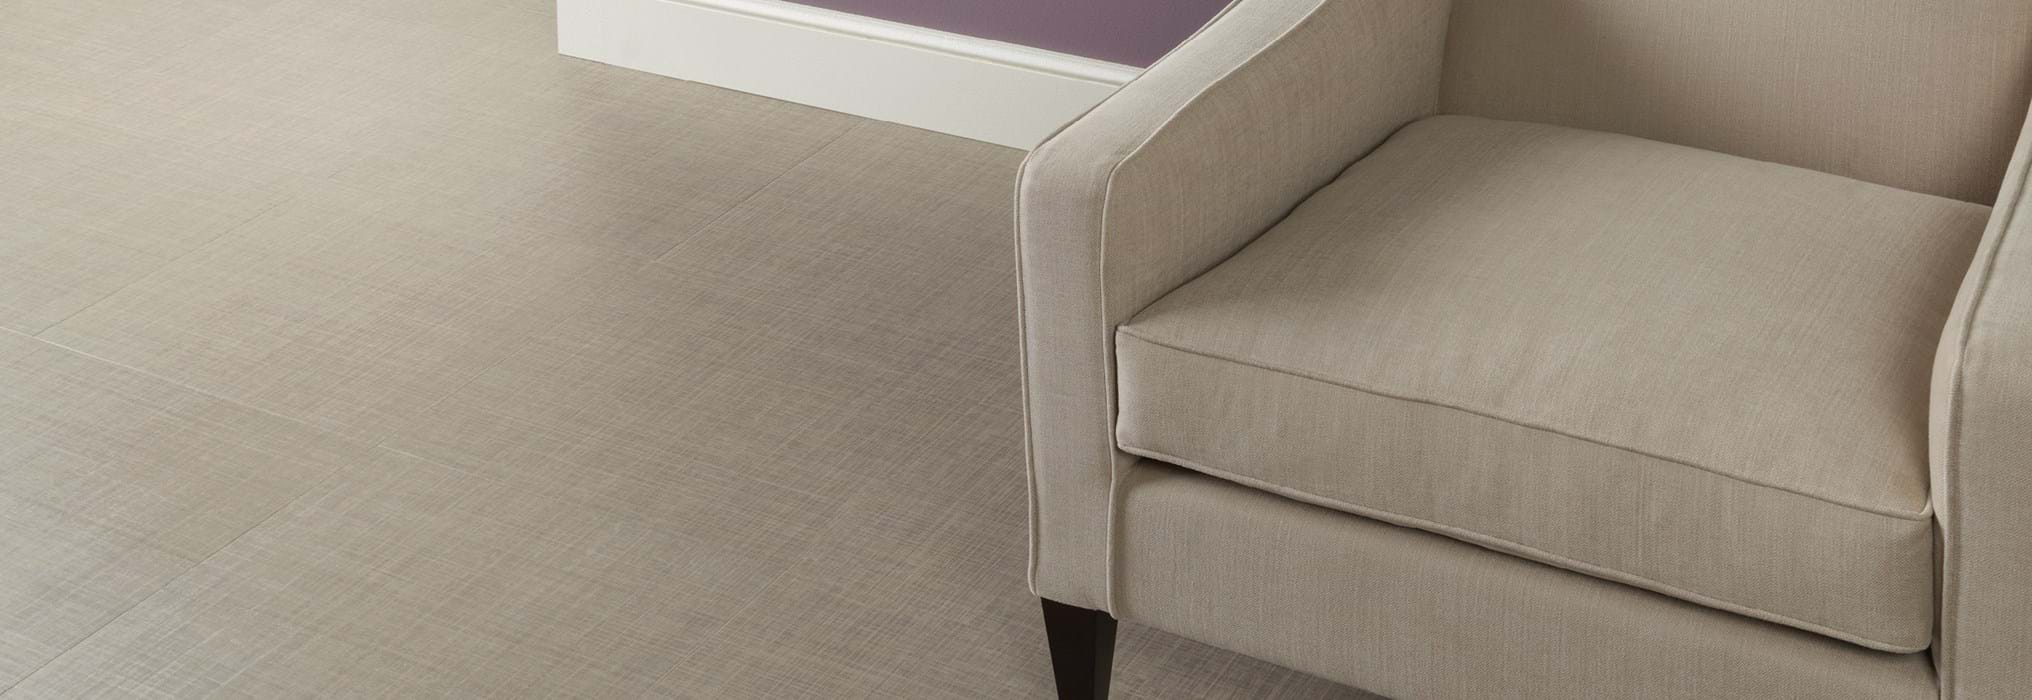 Amtico International: Linen Weave - AM5A3800